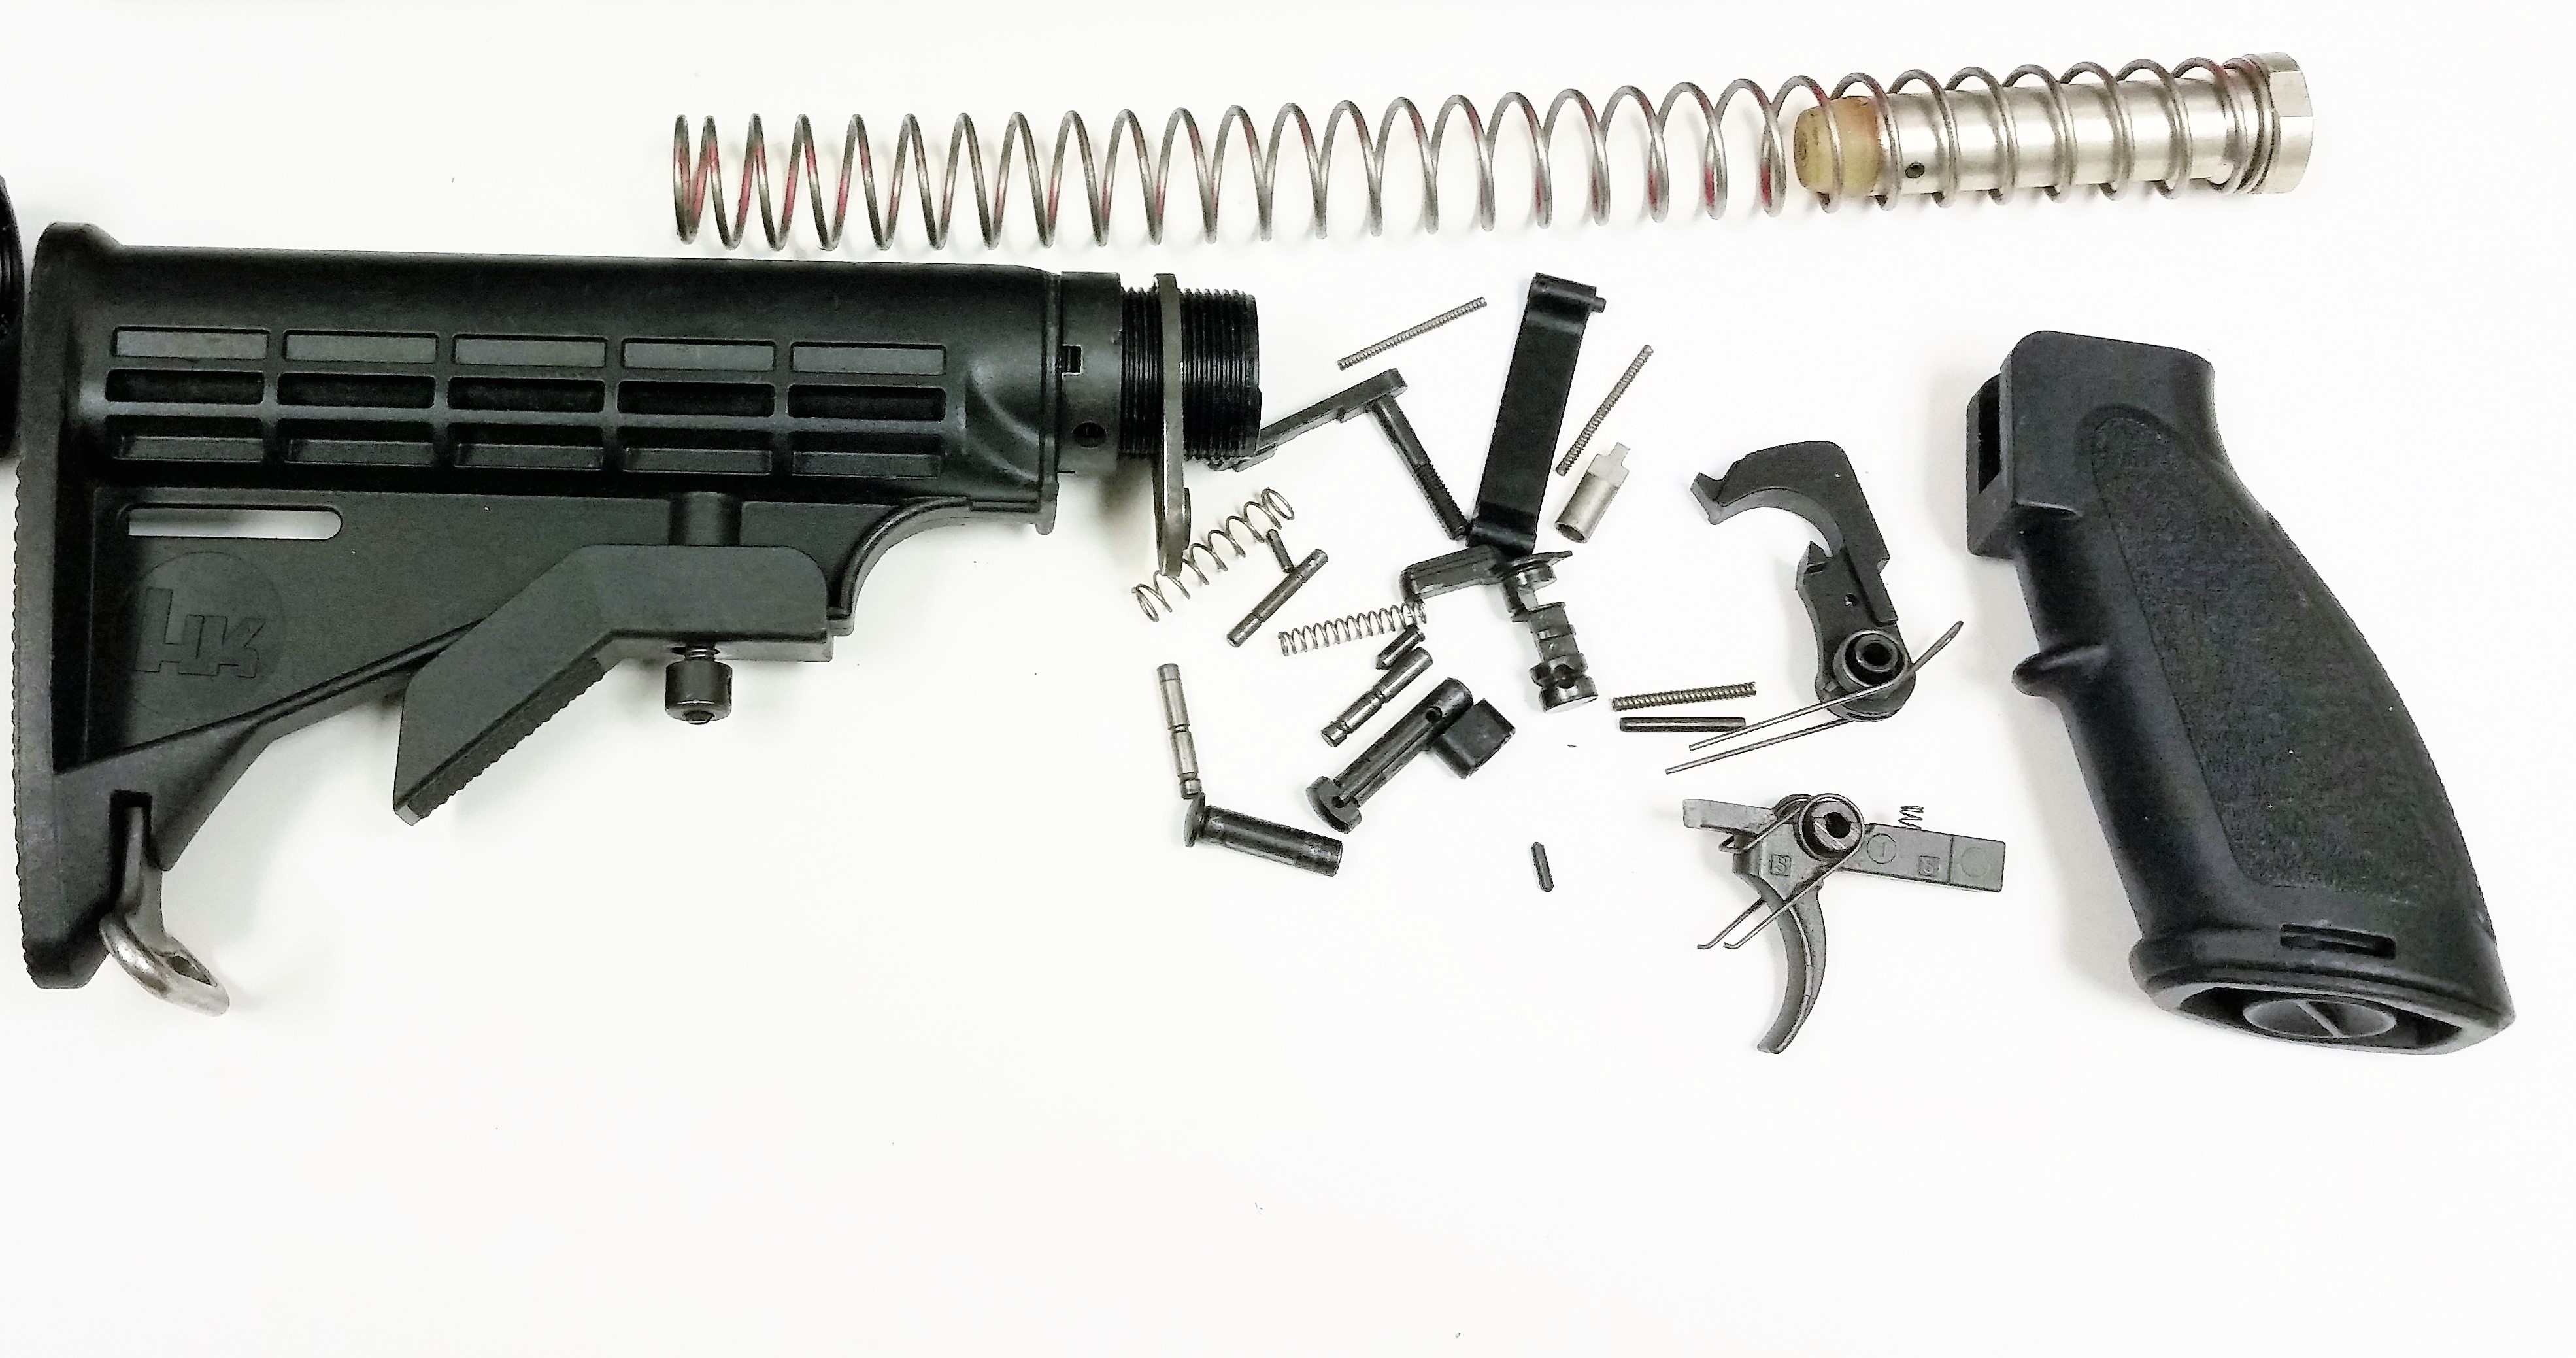 HK 416 Lower Parts Kit - 5 56